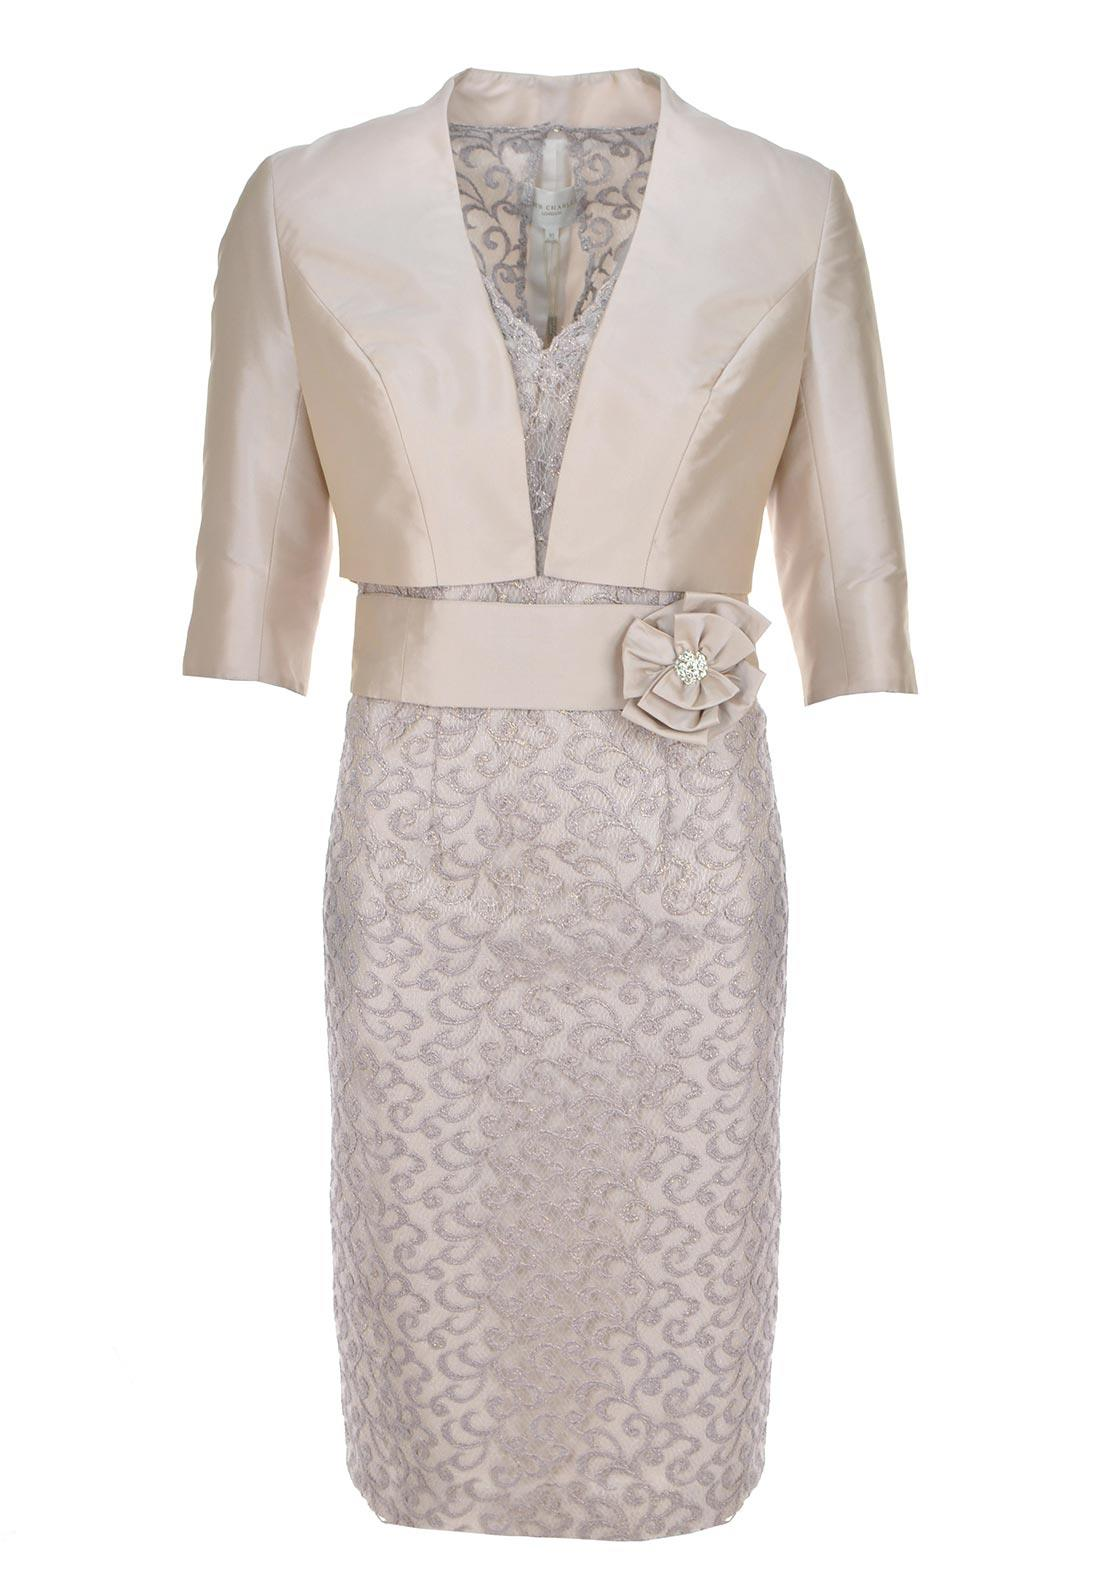 John Charles Special Occasion Dress and Bolero, Blush